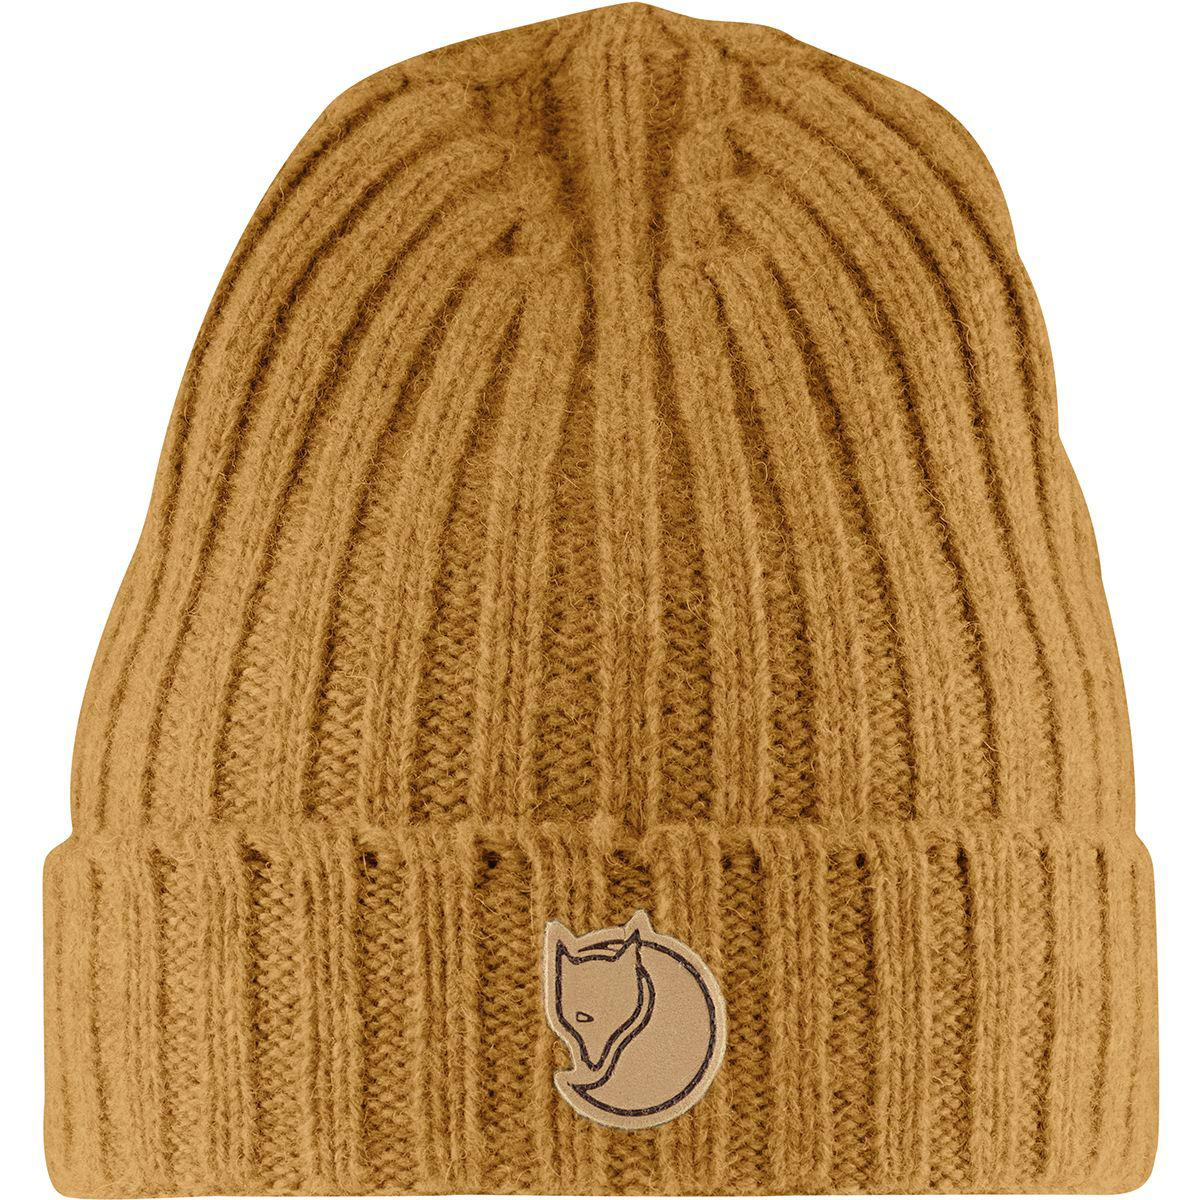 3b387674a99ae Lyst - Fjallraven Re-wool Hat in Brown for Men